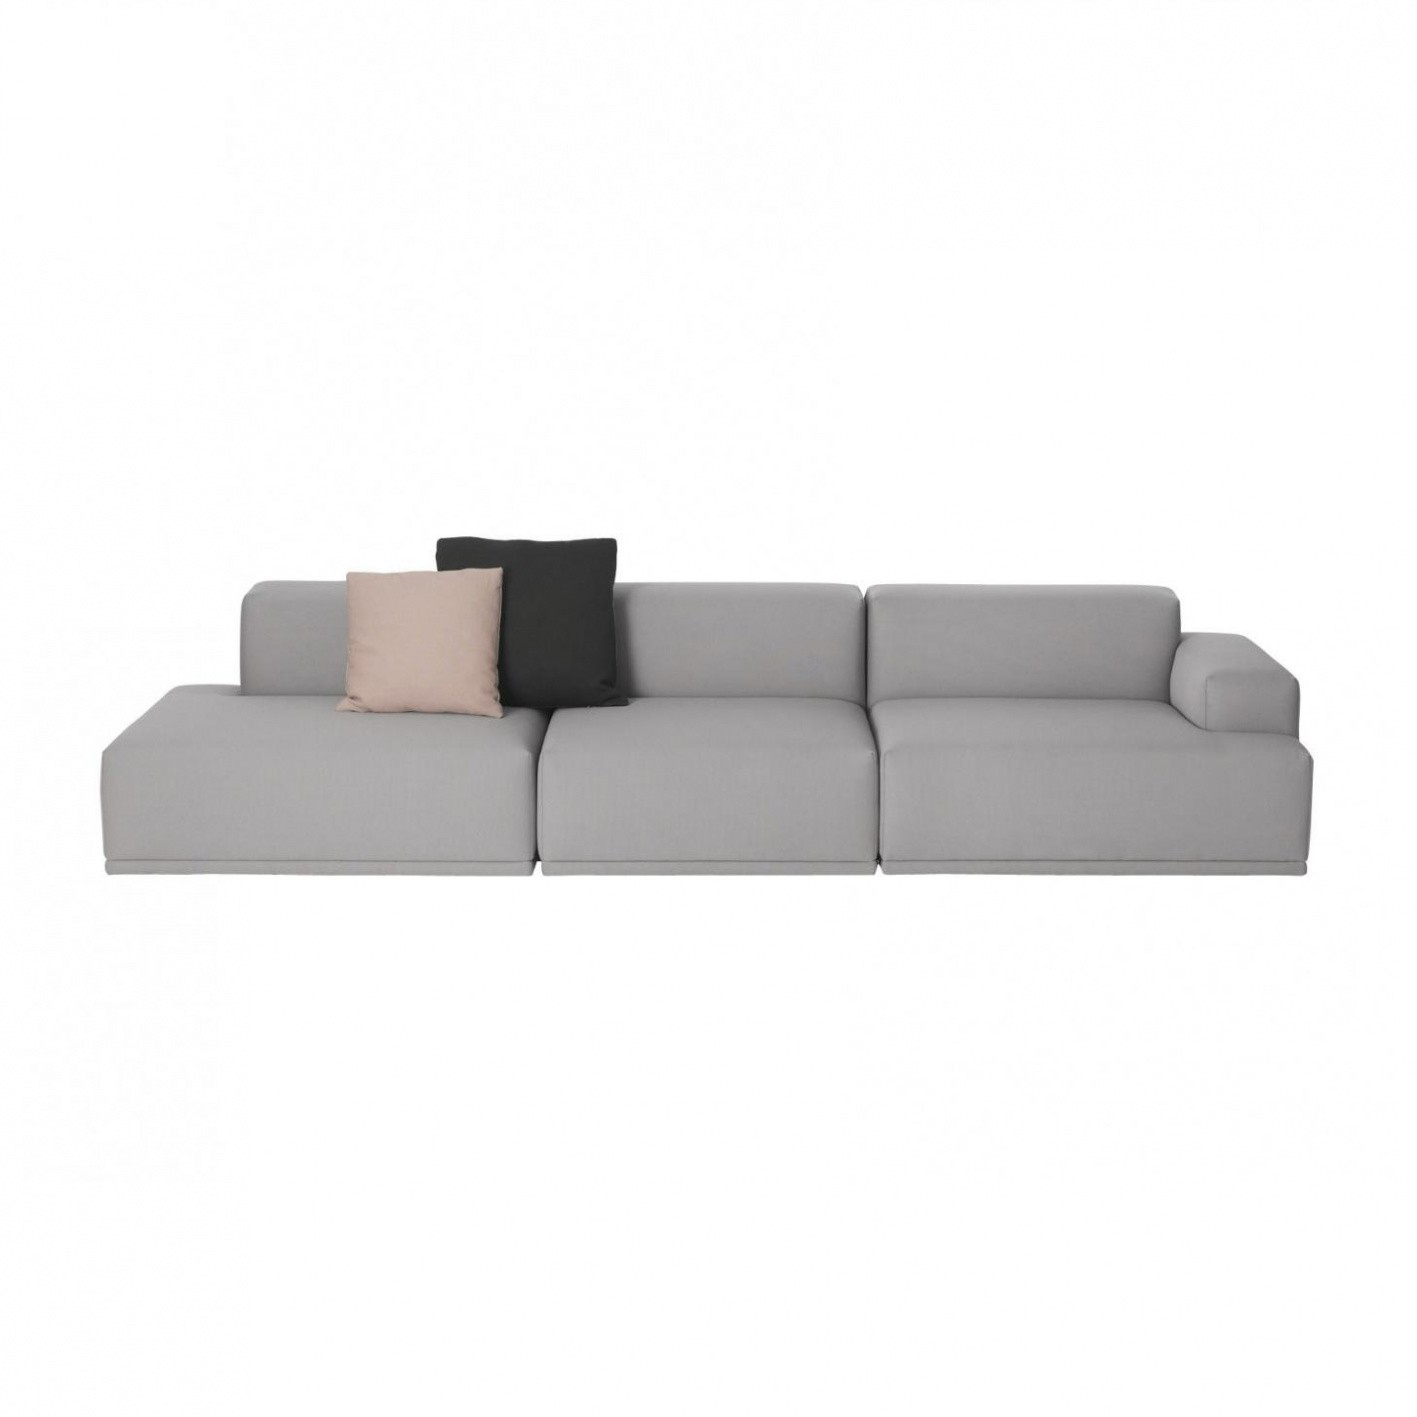 Muuto Connect Lounge 3 Seater Sofa